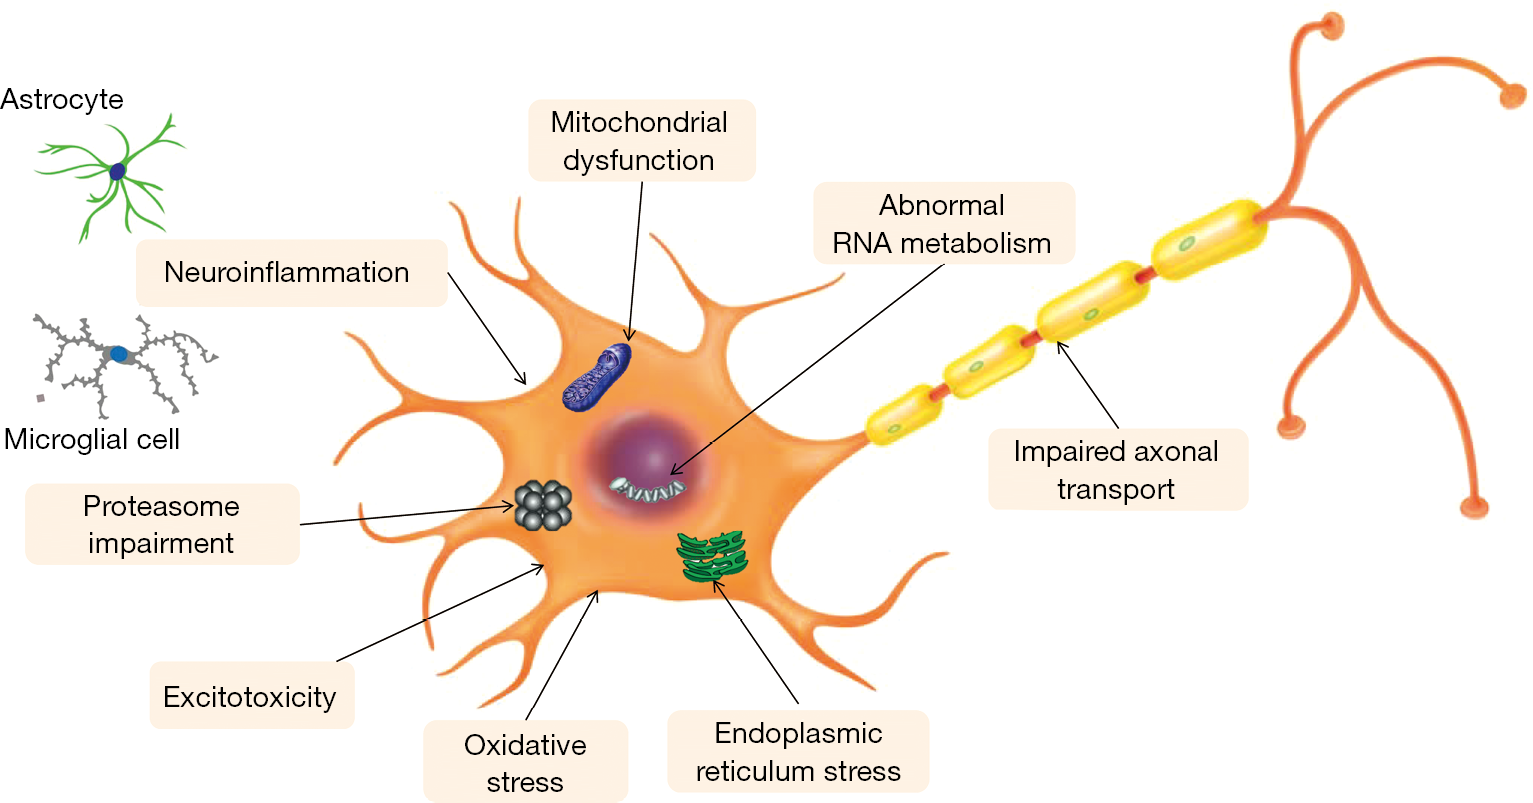 ALS Stem Cell Treatment Therapy (Amyotrophic Lateral Sclerosis)